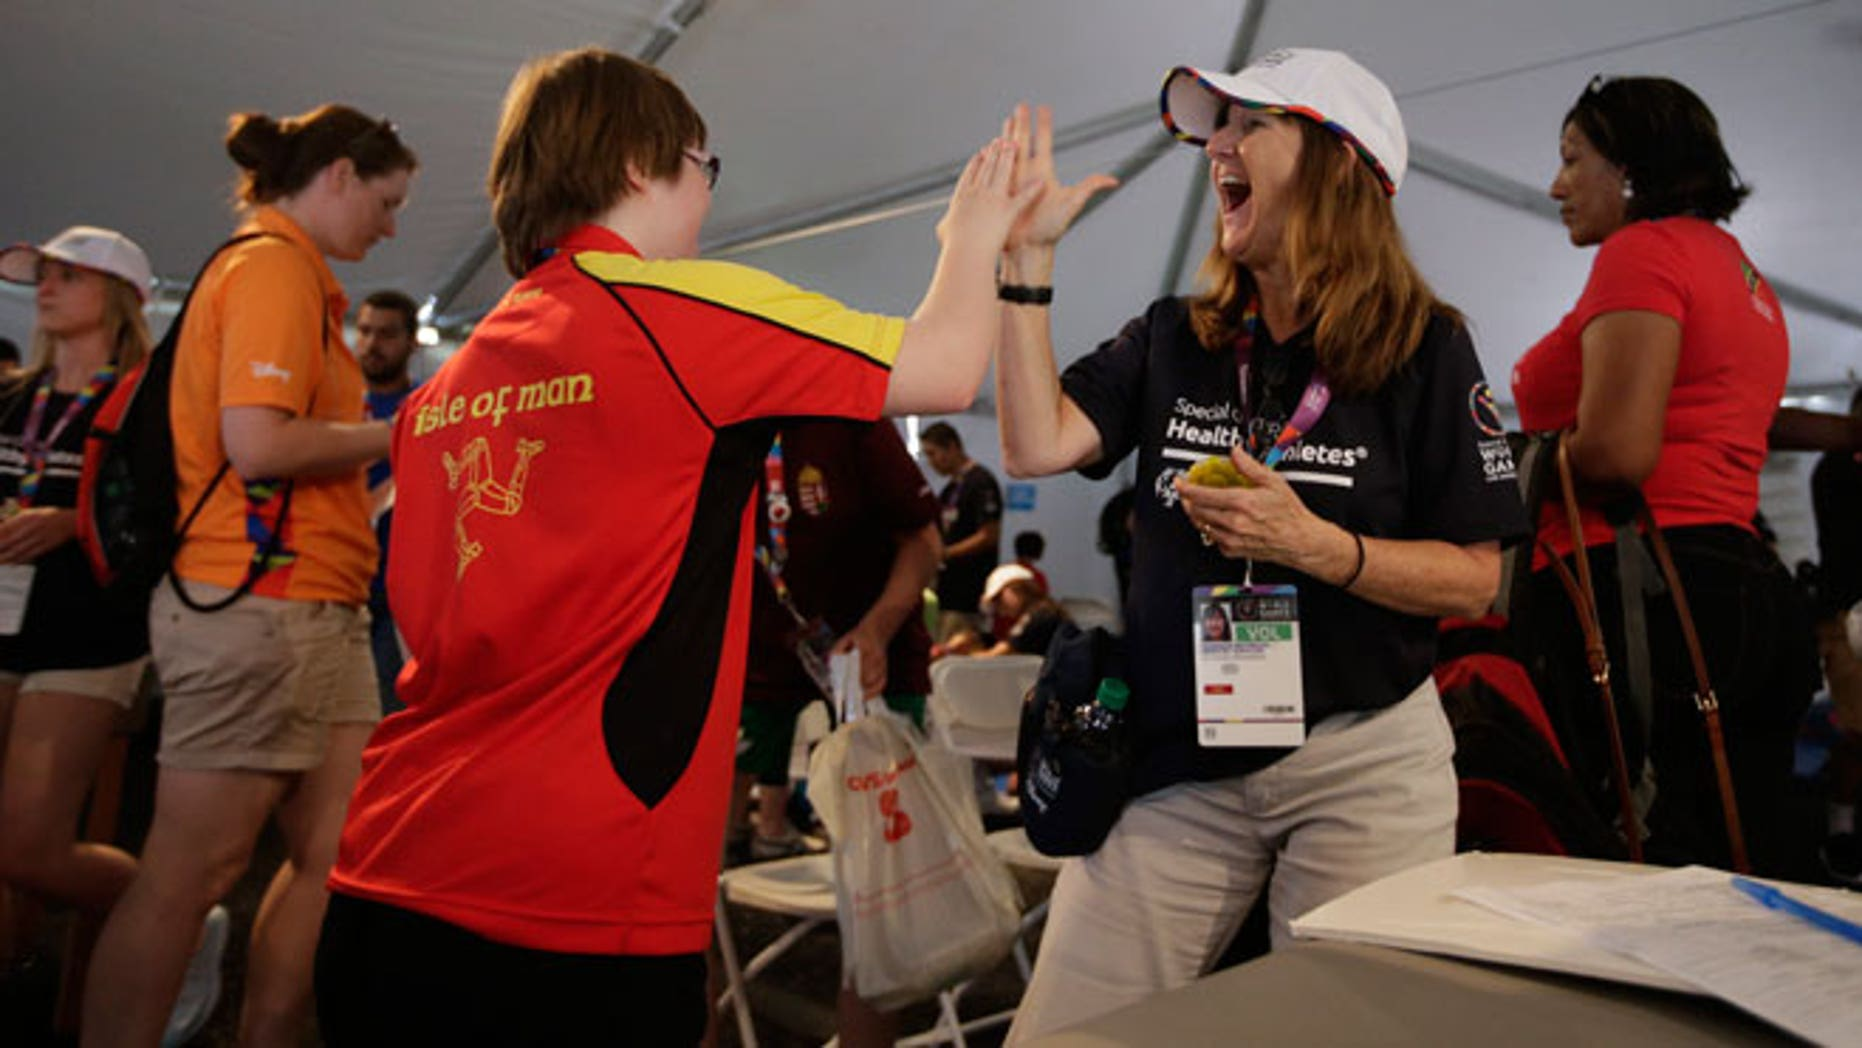 Volunteer Monique Peterson, right, high-fives an athlete from the Isle of Man after a balance test at the 2015 Special Olympics World Games, Tuesday, July 28, 2015, in Los Angeles. Organizers say many of these intellectually challenged athletes have never been examined by a doctor of any kind. Since it began in 1968, the Special Olympics' Healthy Athletes program has provided free medical services to more than 1.6 million people with intellectual disabilities.